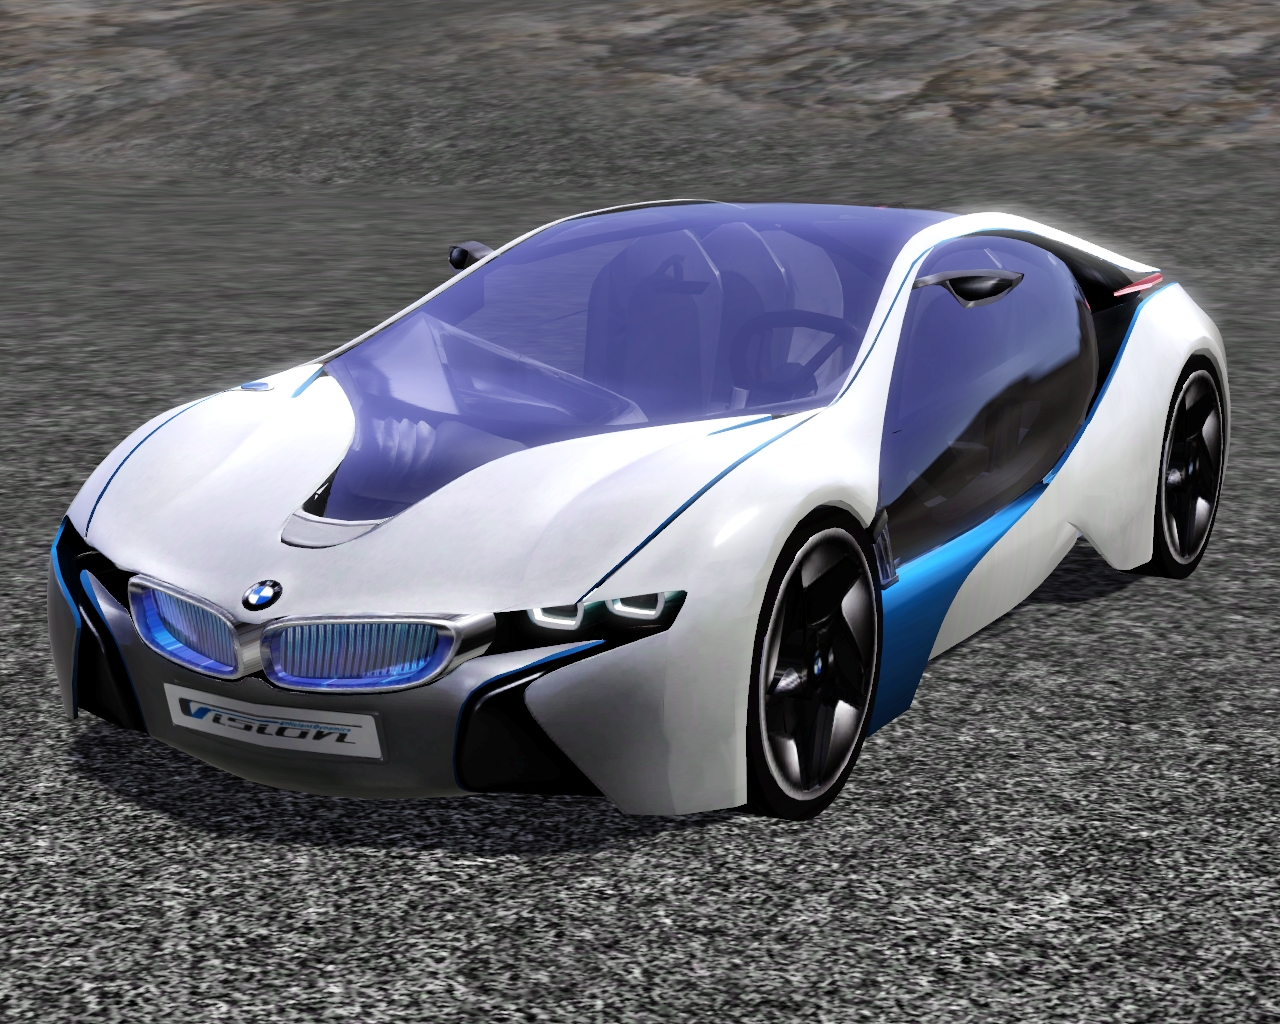 2009 BMW EfficientDynamics Concept by Fresh-Prince